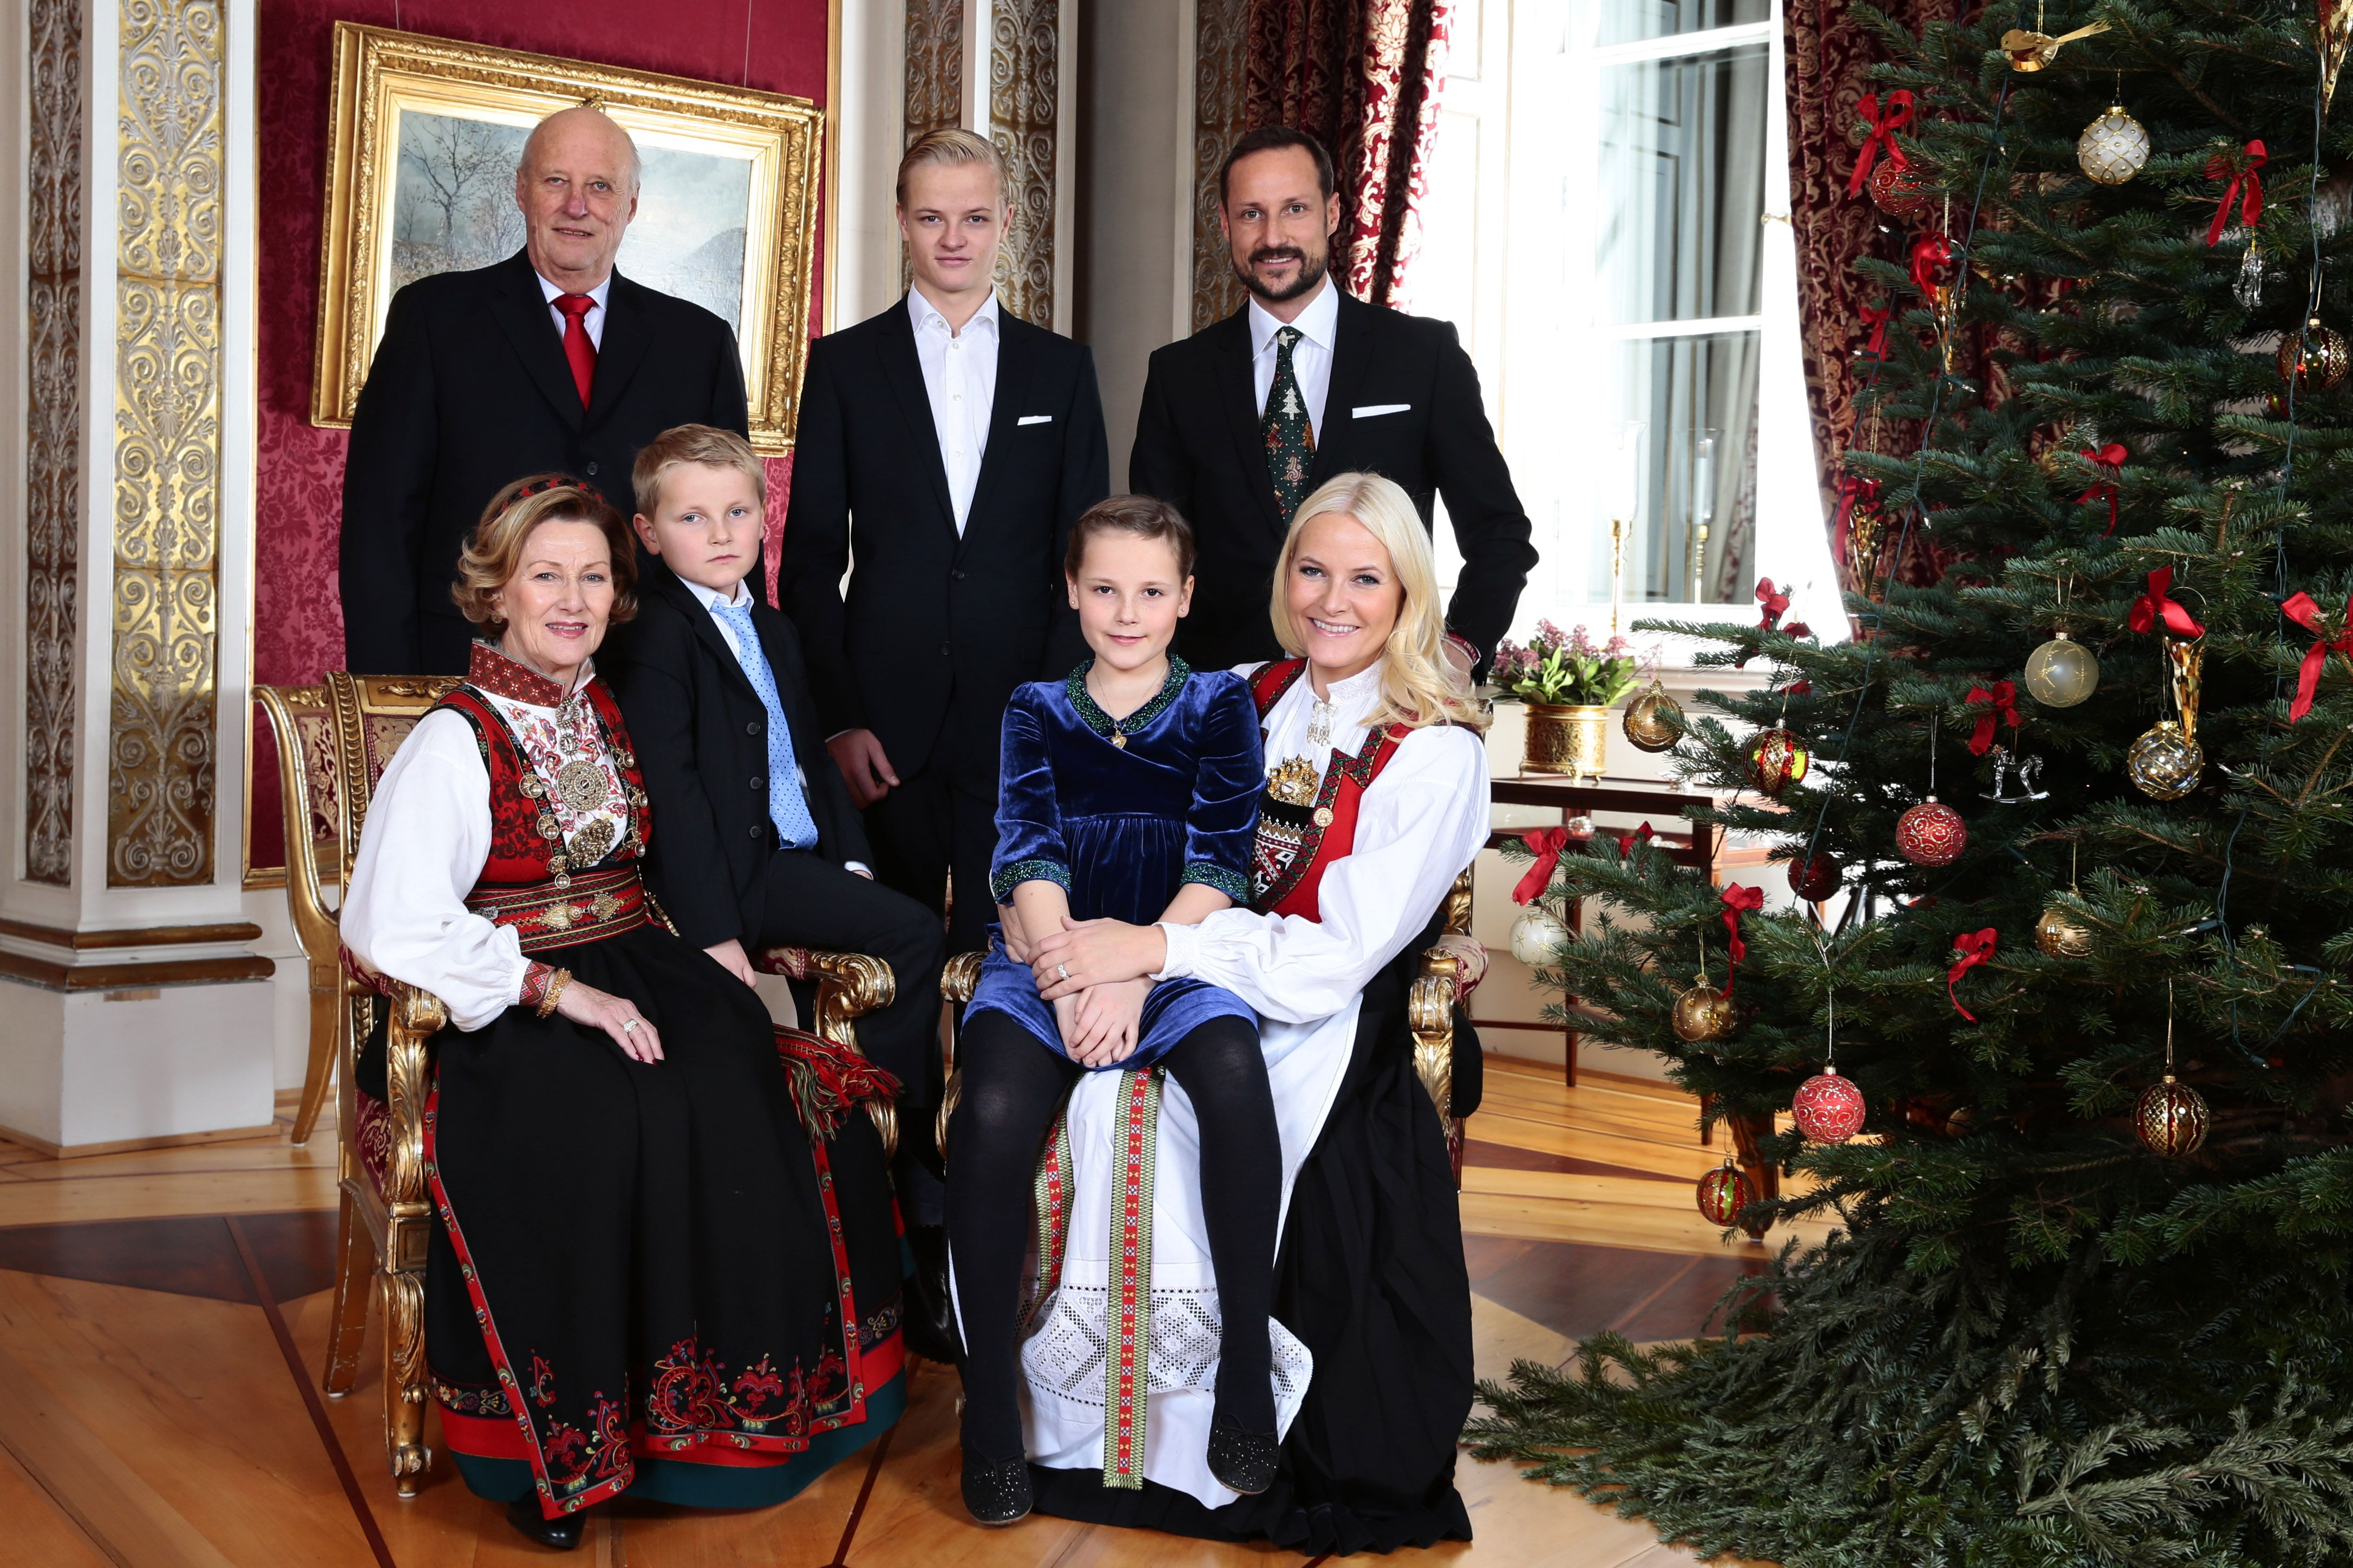 Norwegian Royal Family Fun Facts 6 Reasons We Love King Harald V Queen Sonja And The Norwegian Monarchy